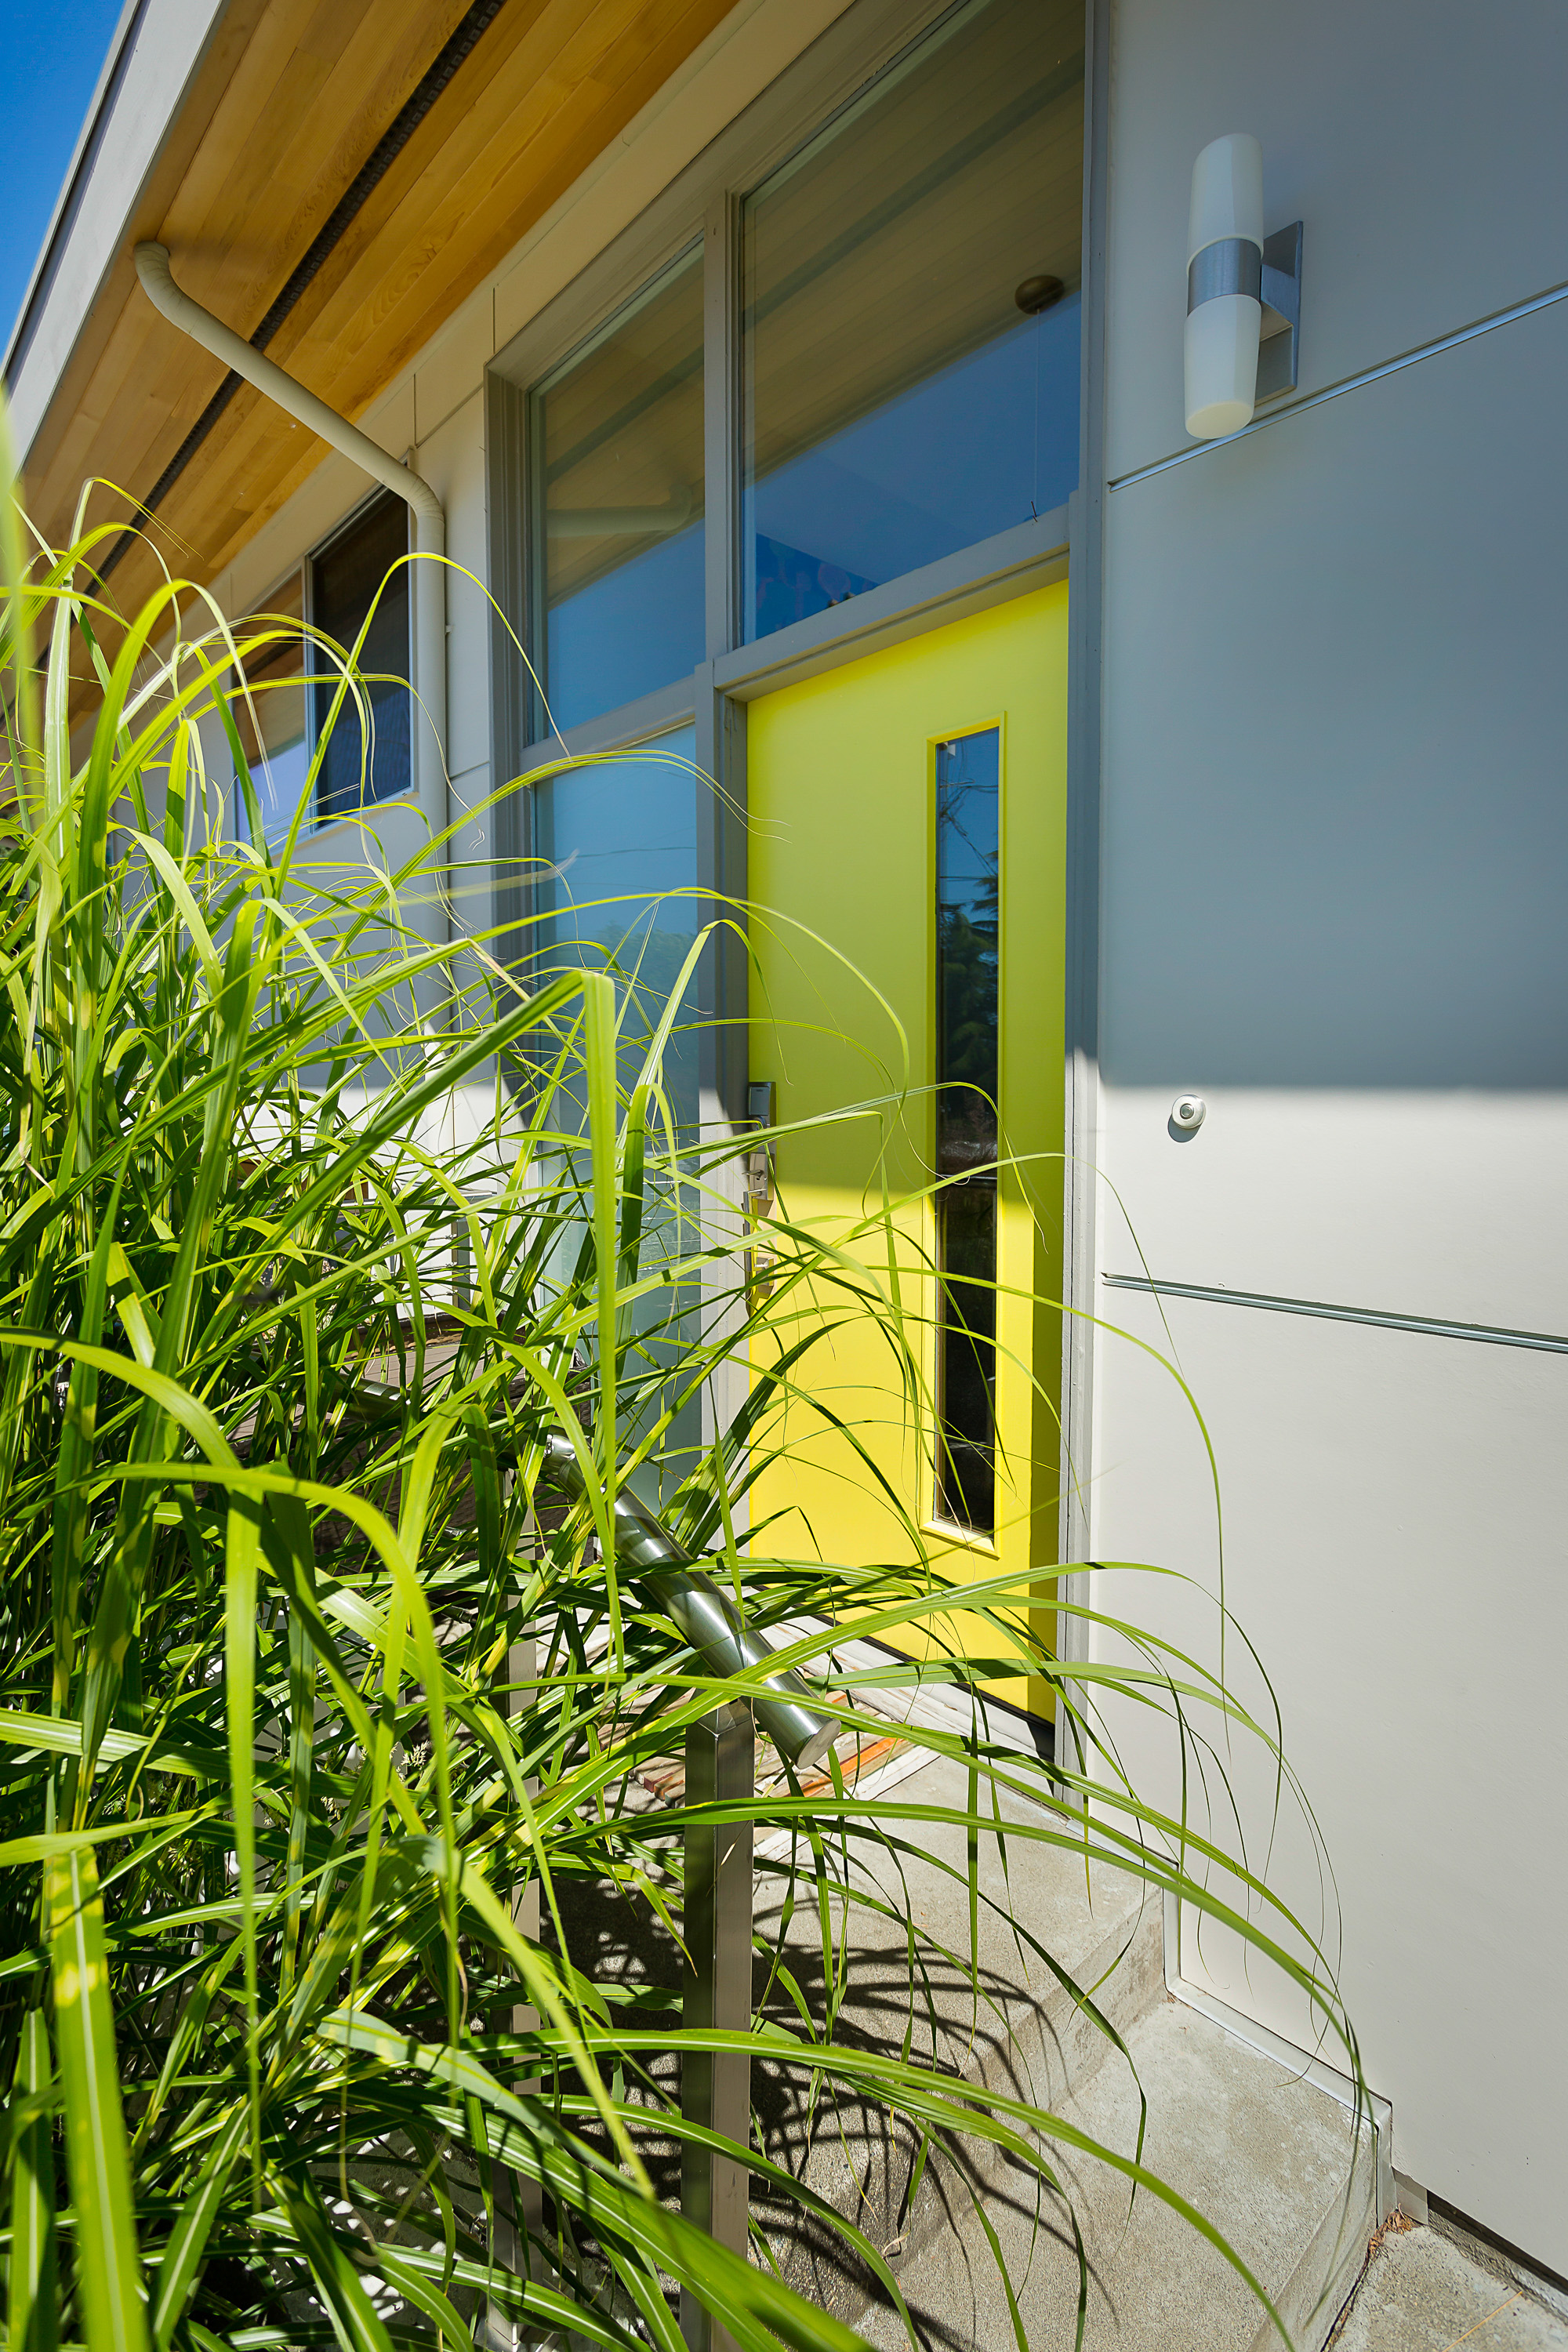 The front door and foliage outside of a house designed by Exterior Crew, LLC in Bellevue, WA